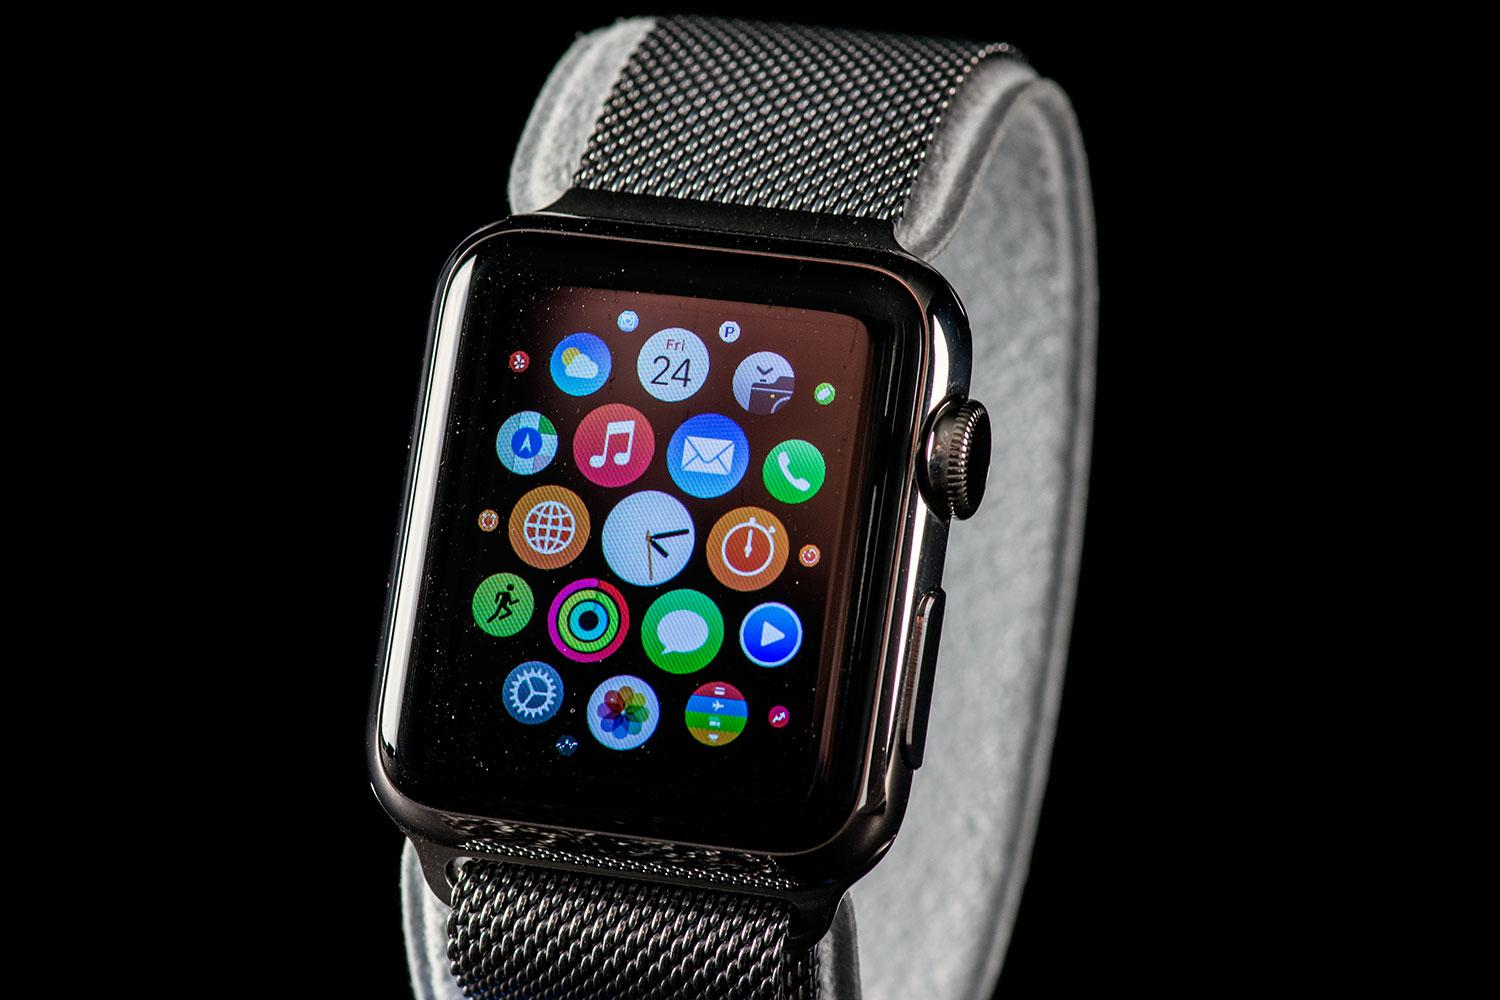 Apple has sold 2.5 million smartwatches, but demand has dipped